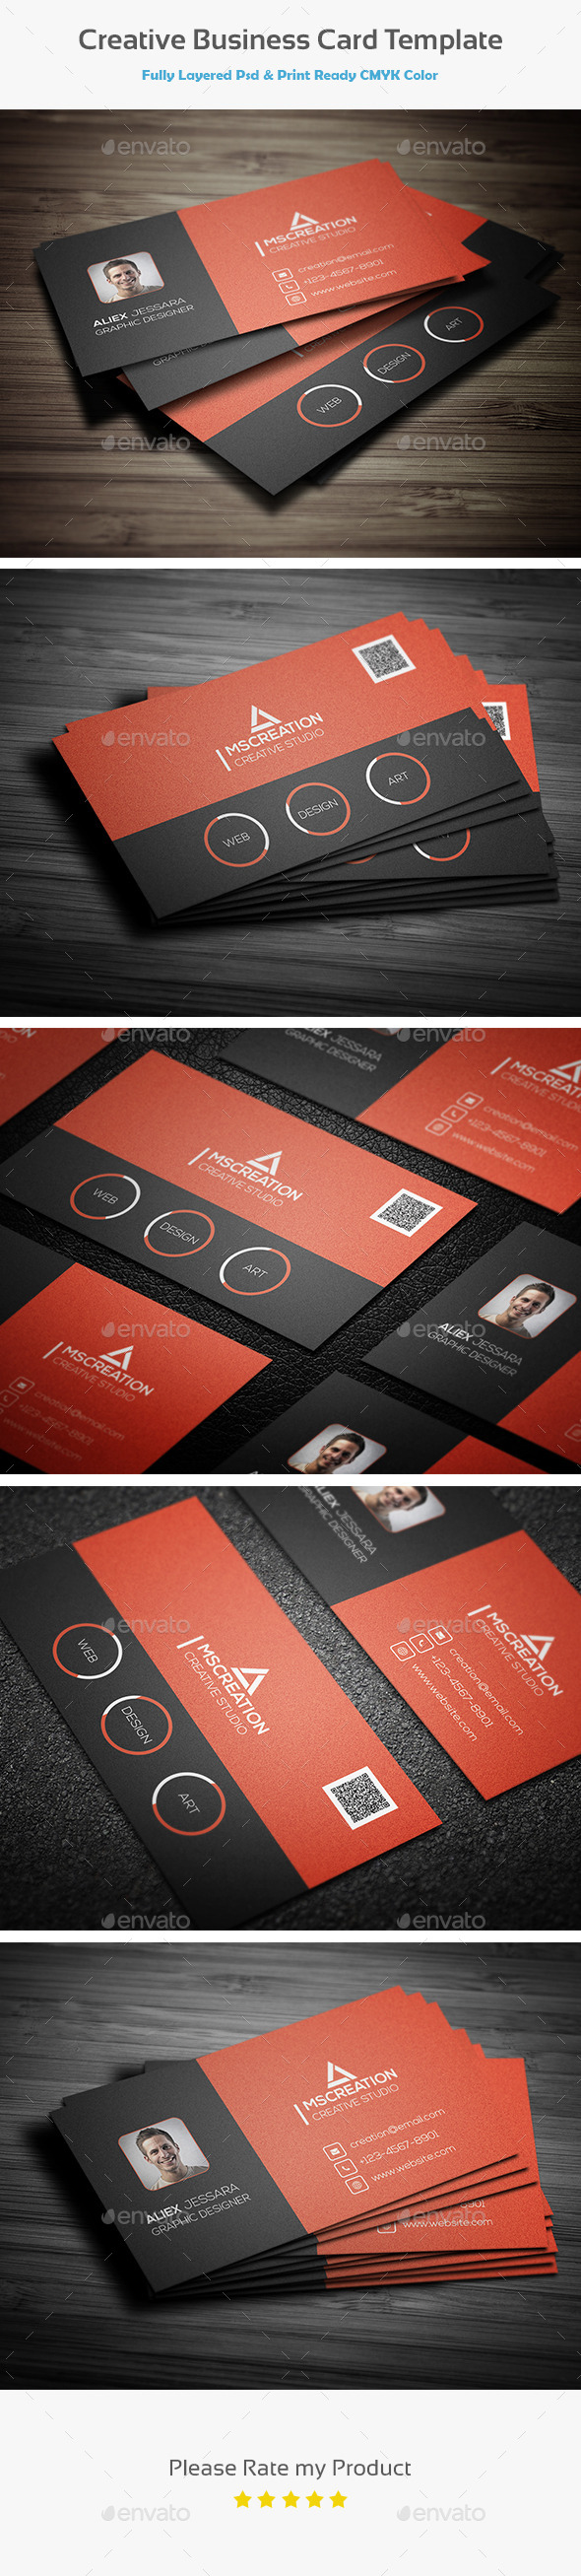 Creative Business card Template 3 - Creative Business Cards